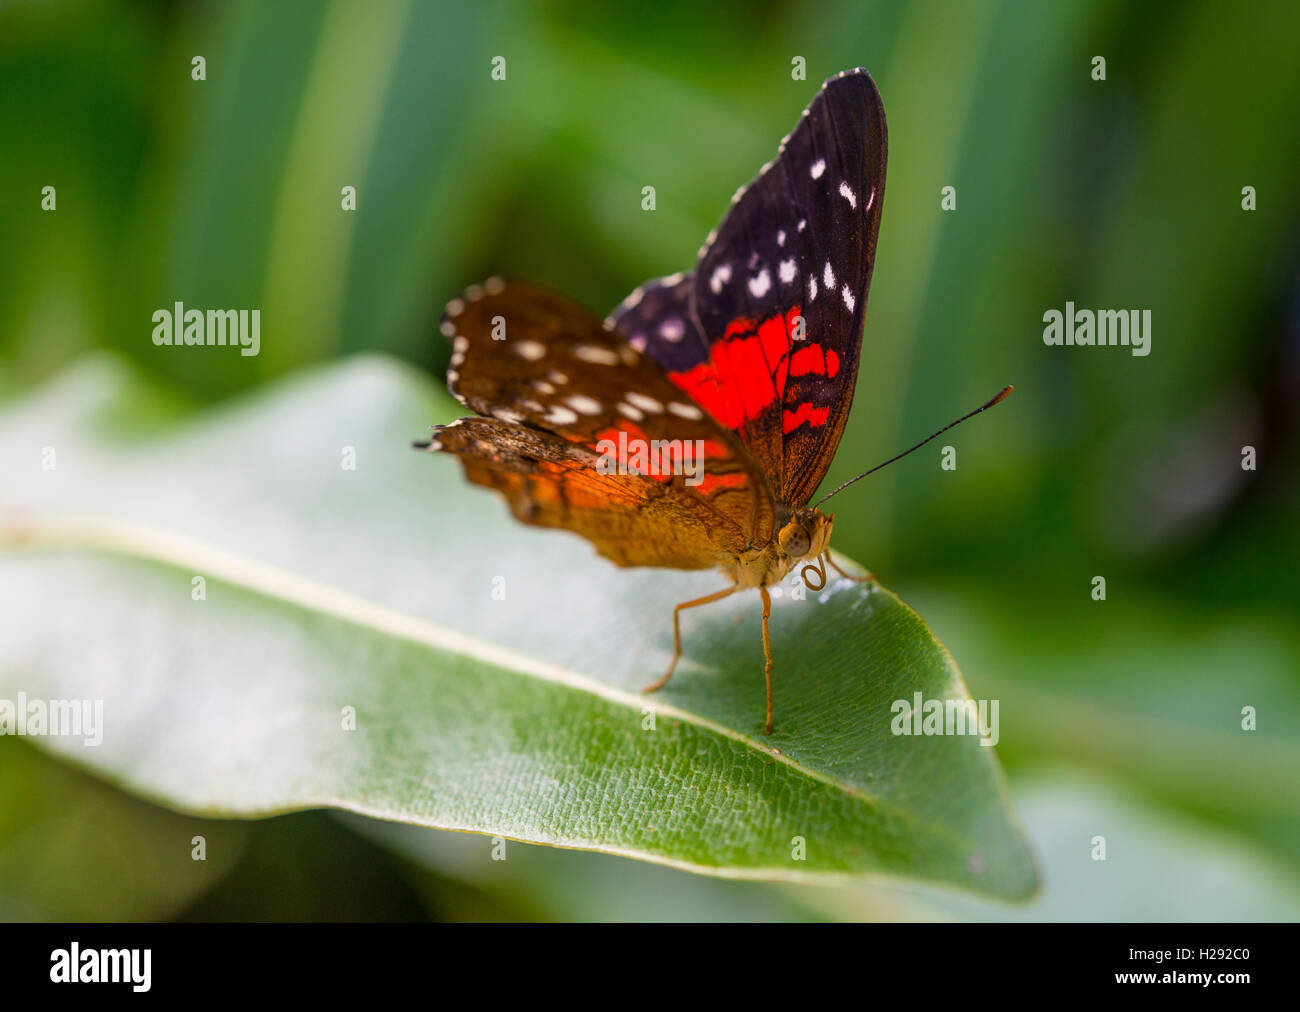 Brown or scarlet peacock (Anartia amathea) on leaf, captive - Stock Image